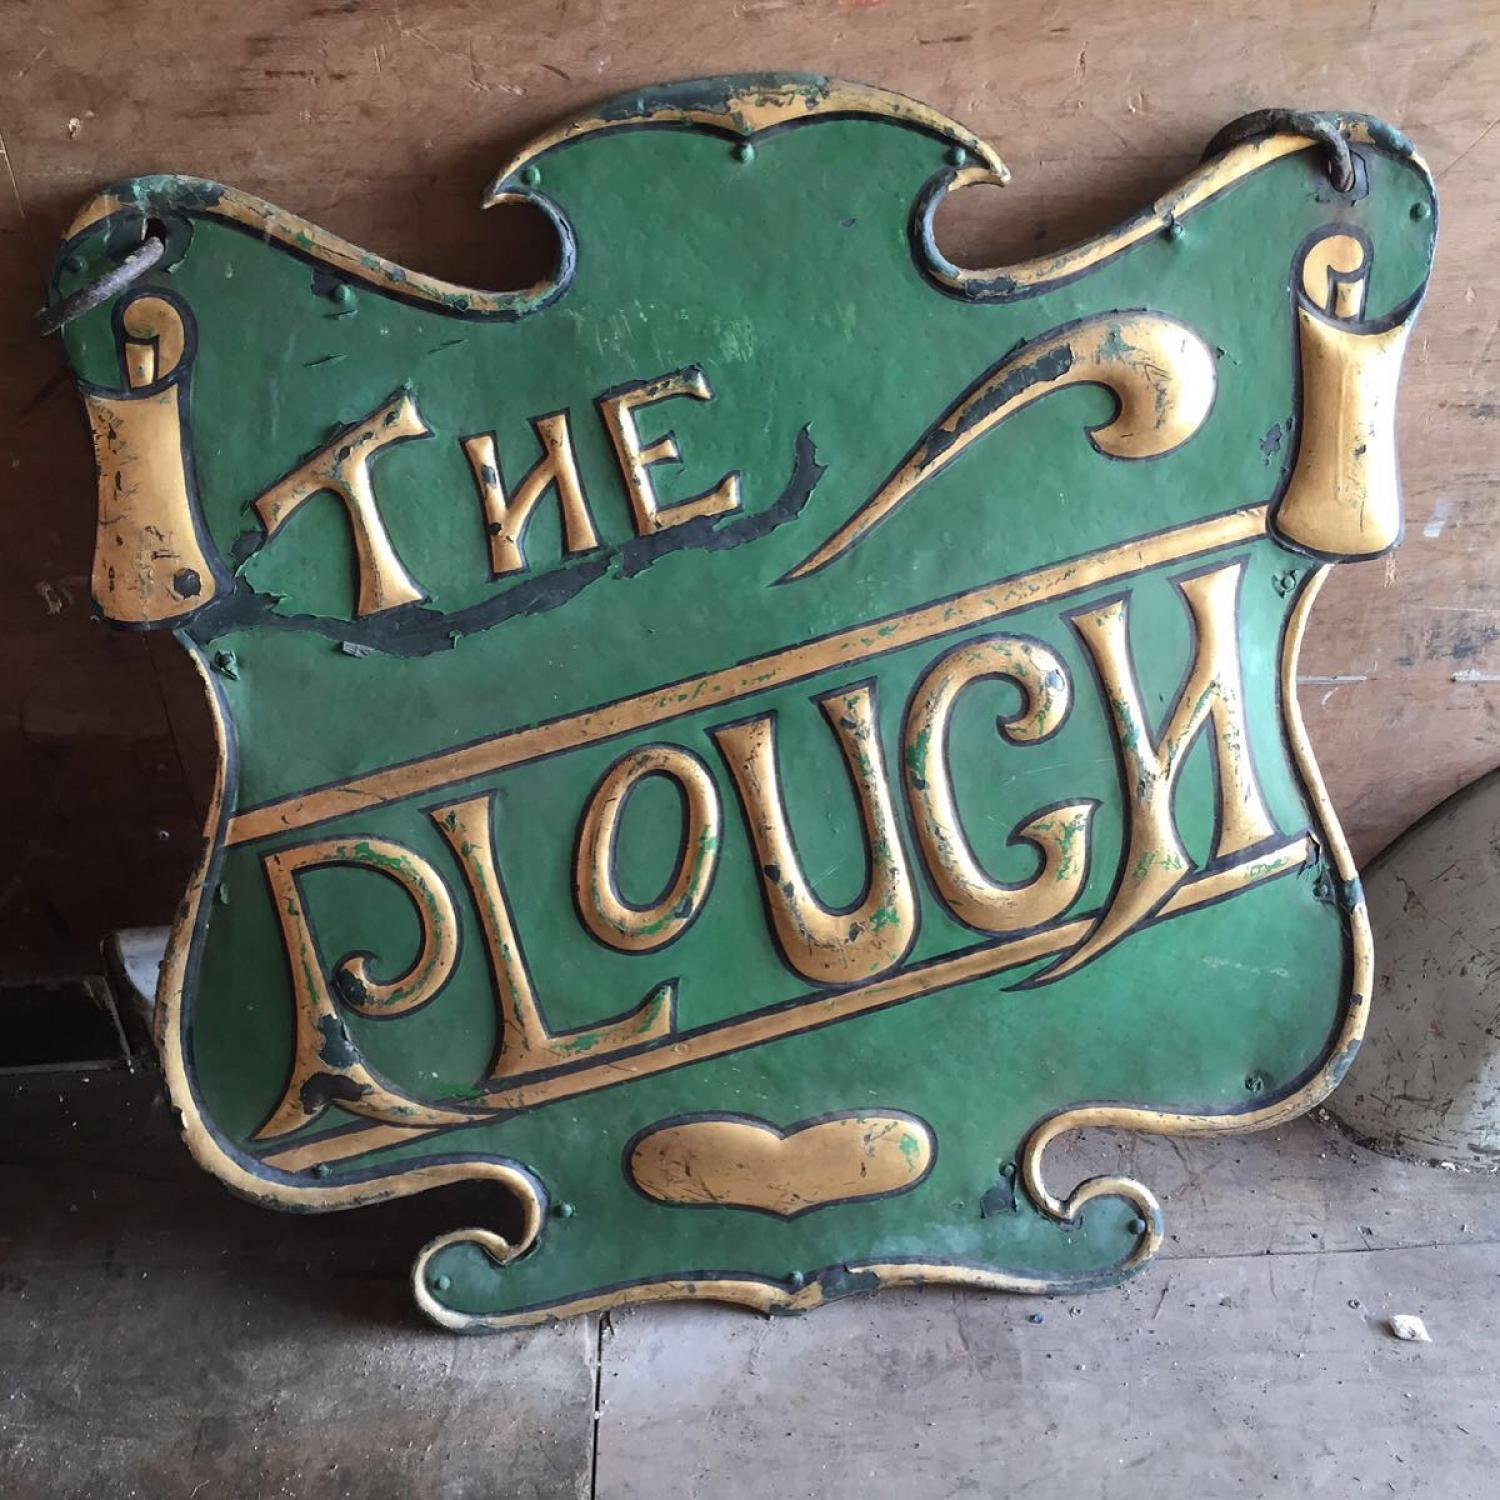 Double Sided Toleware Pub Sign c1900